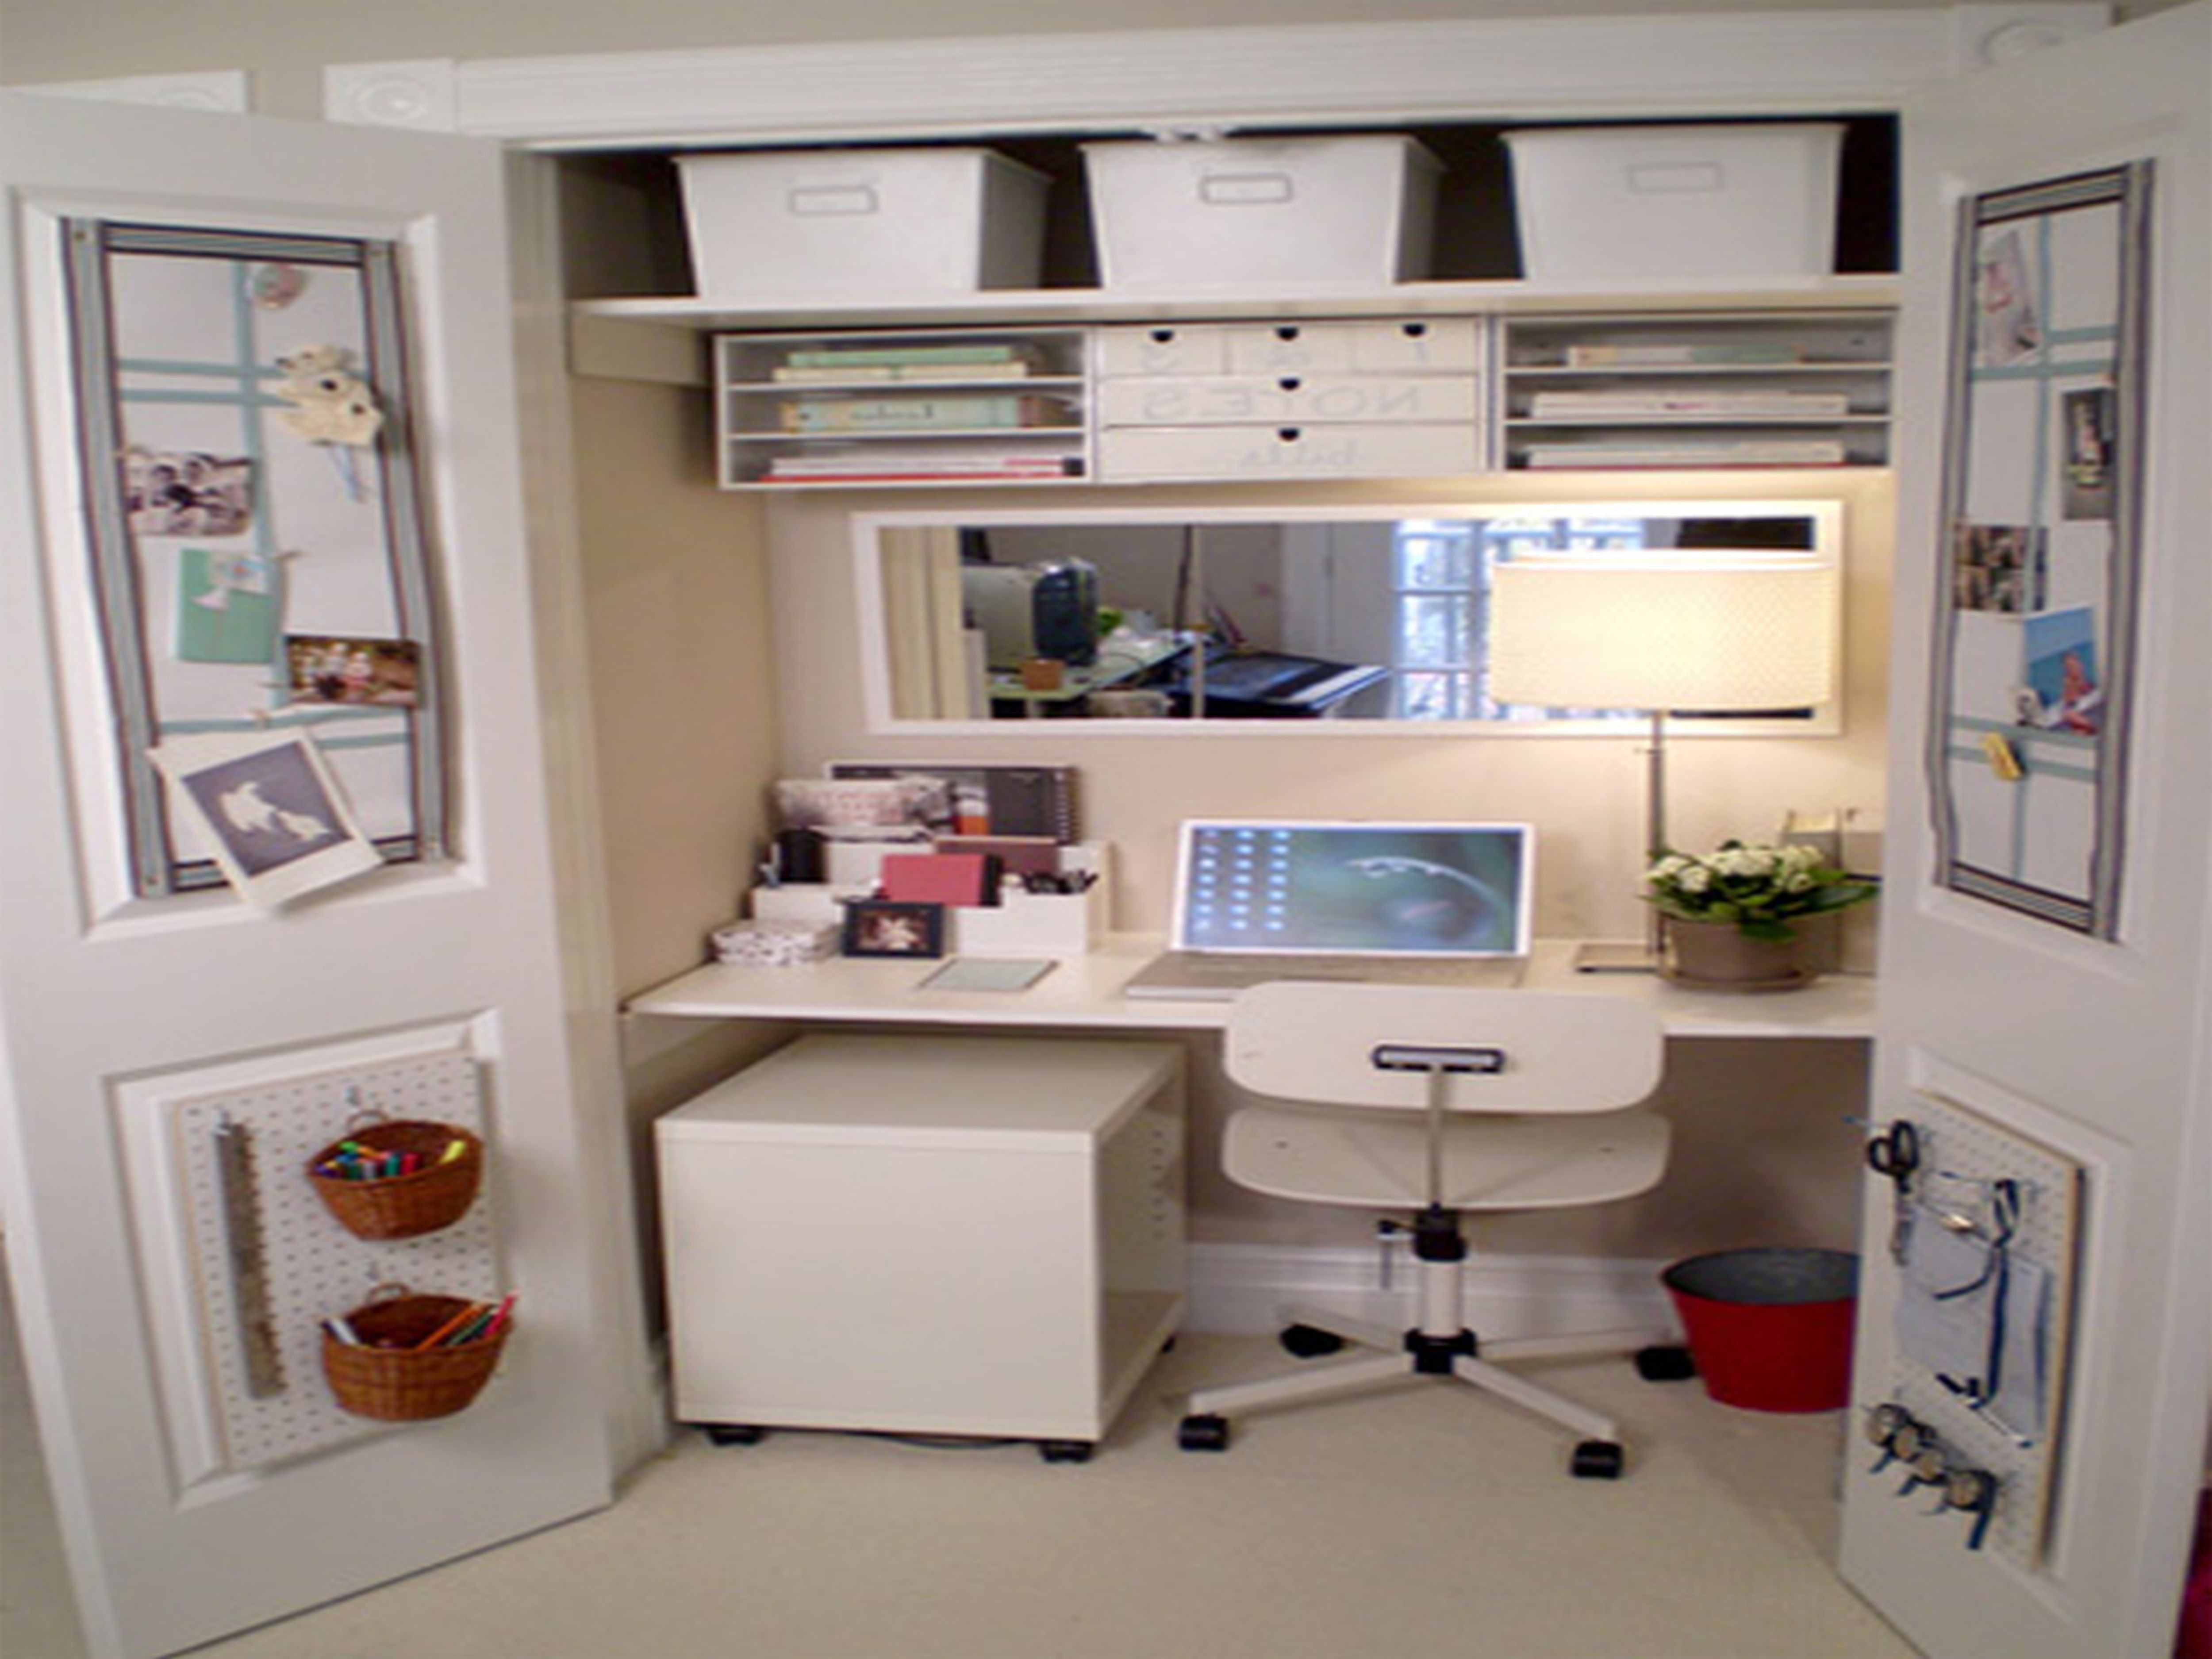 Convert A Closet To A Desk Makeup Space With Storage Teen Girl